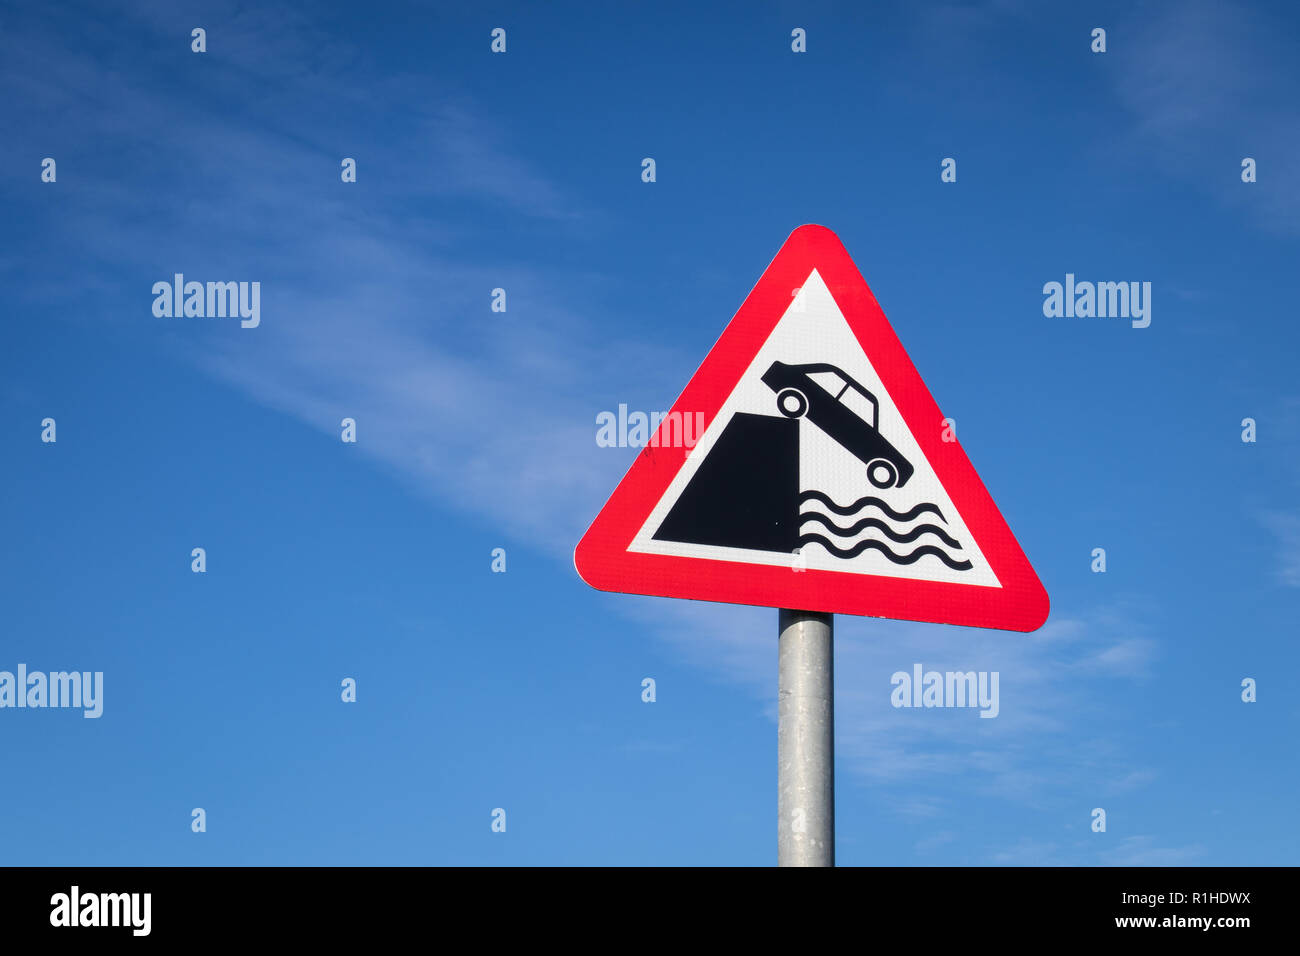 Highway code red triangle road sign in the United Kingdom warning motorists about the danger of a quayside or river bank. - Stock Image